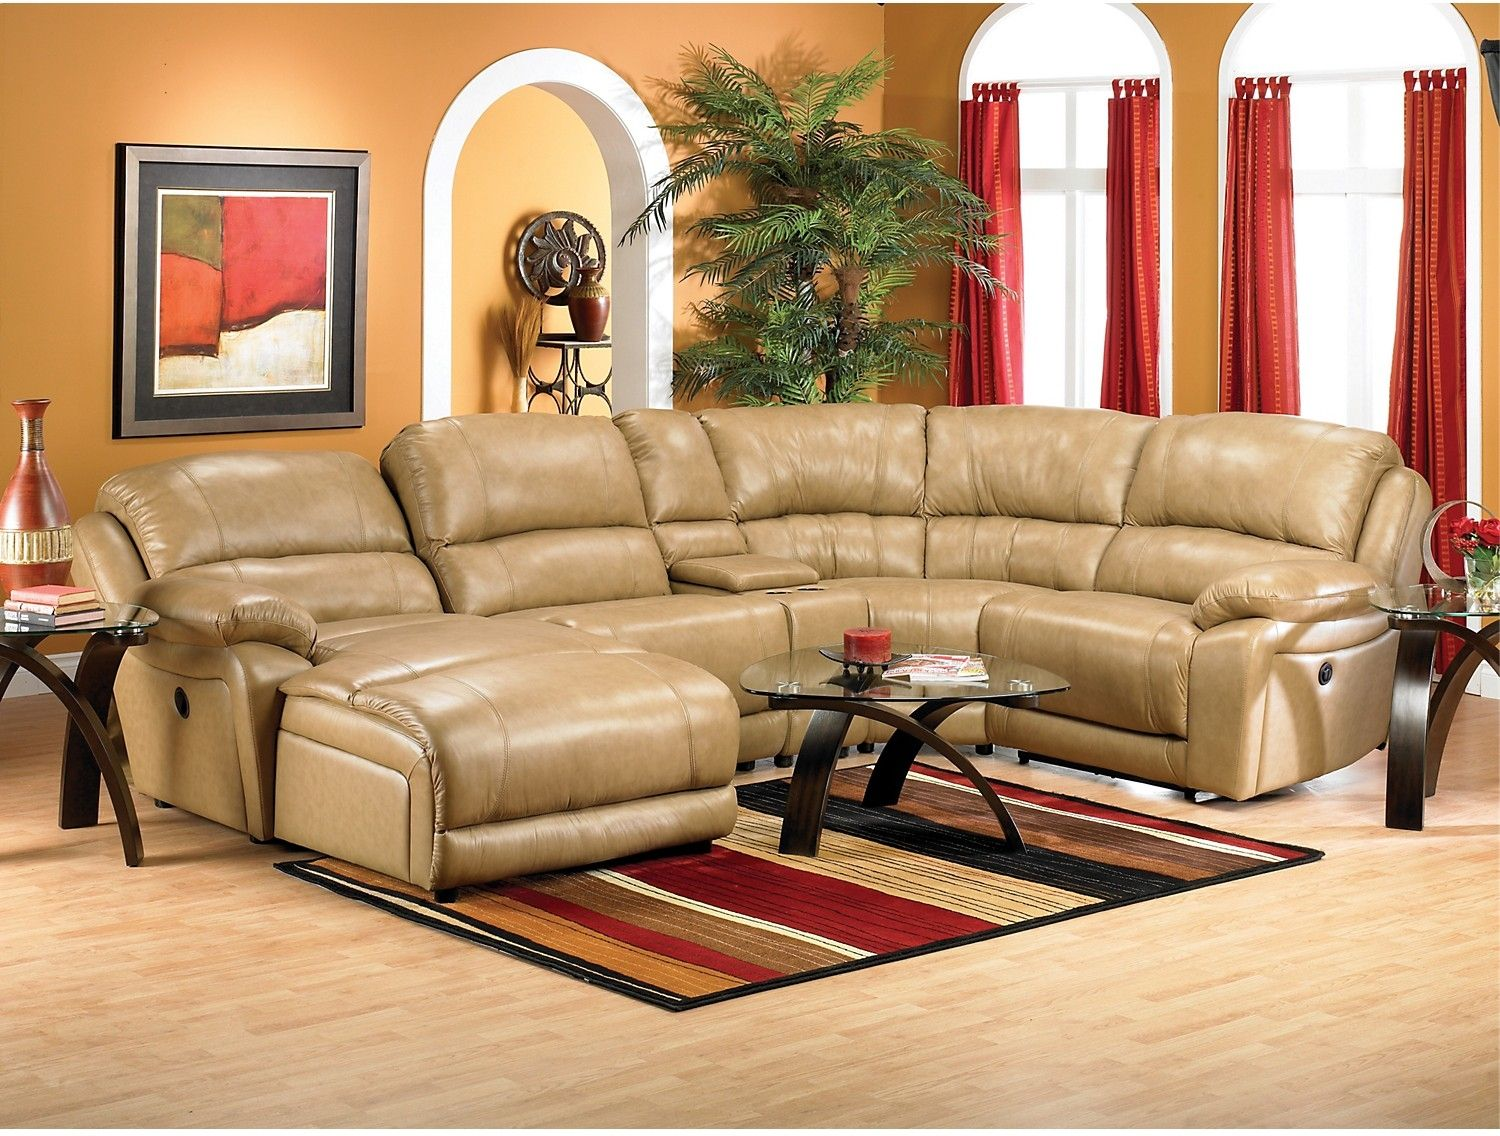 Marco Genuine Leather 5 Piece Sectional With Left Facing Inclining Chaise Toffee Leather Couches Living Room Classy Living Room Leather Sectional Living Room